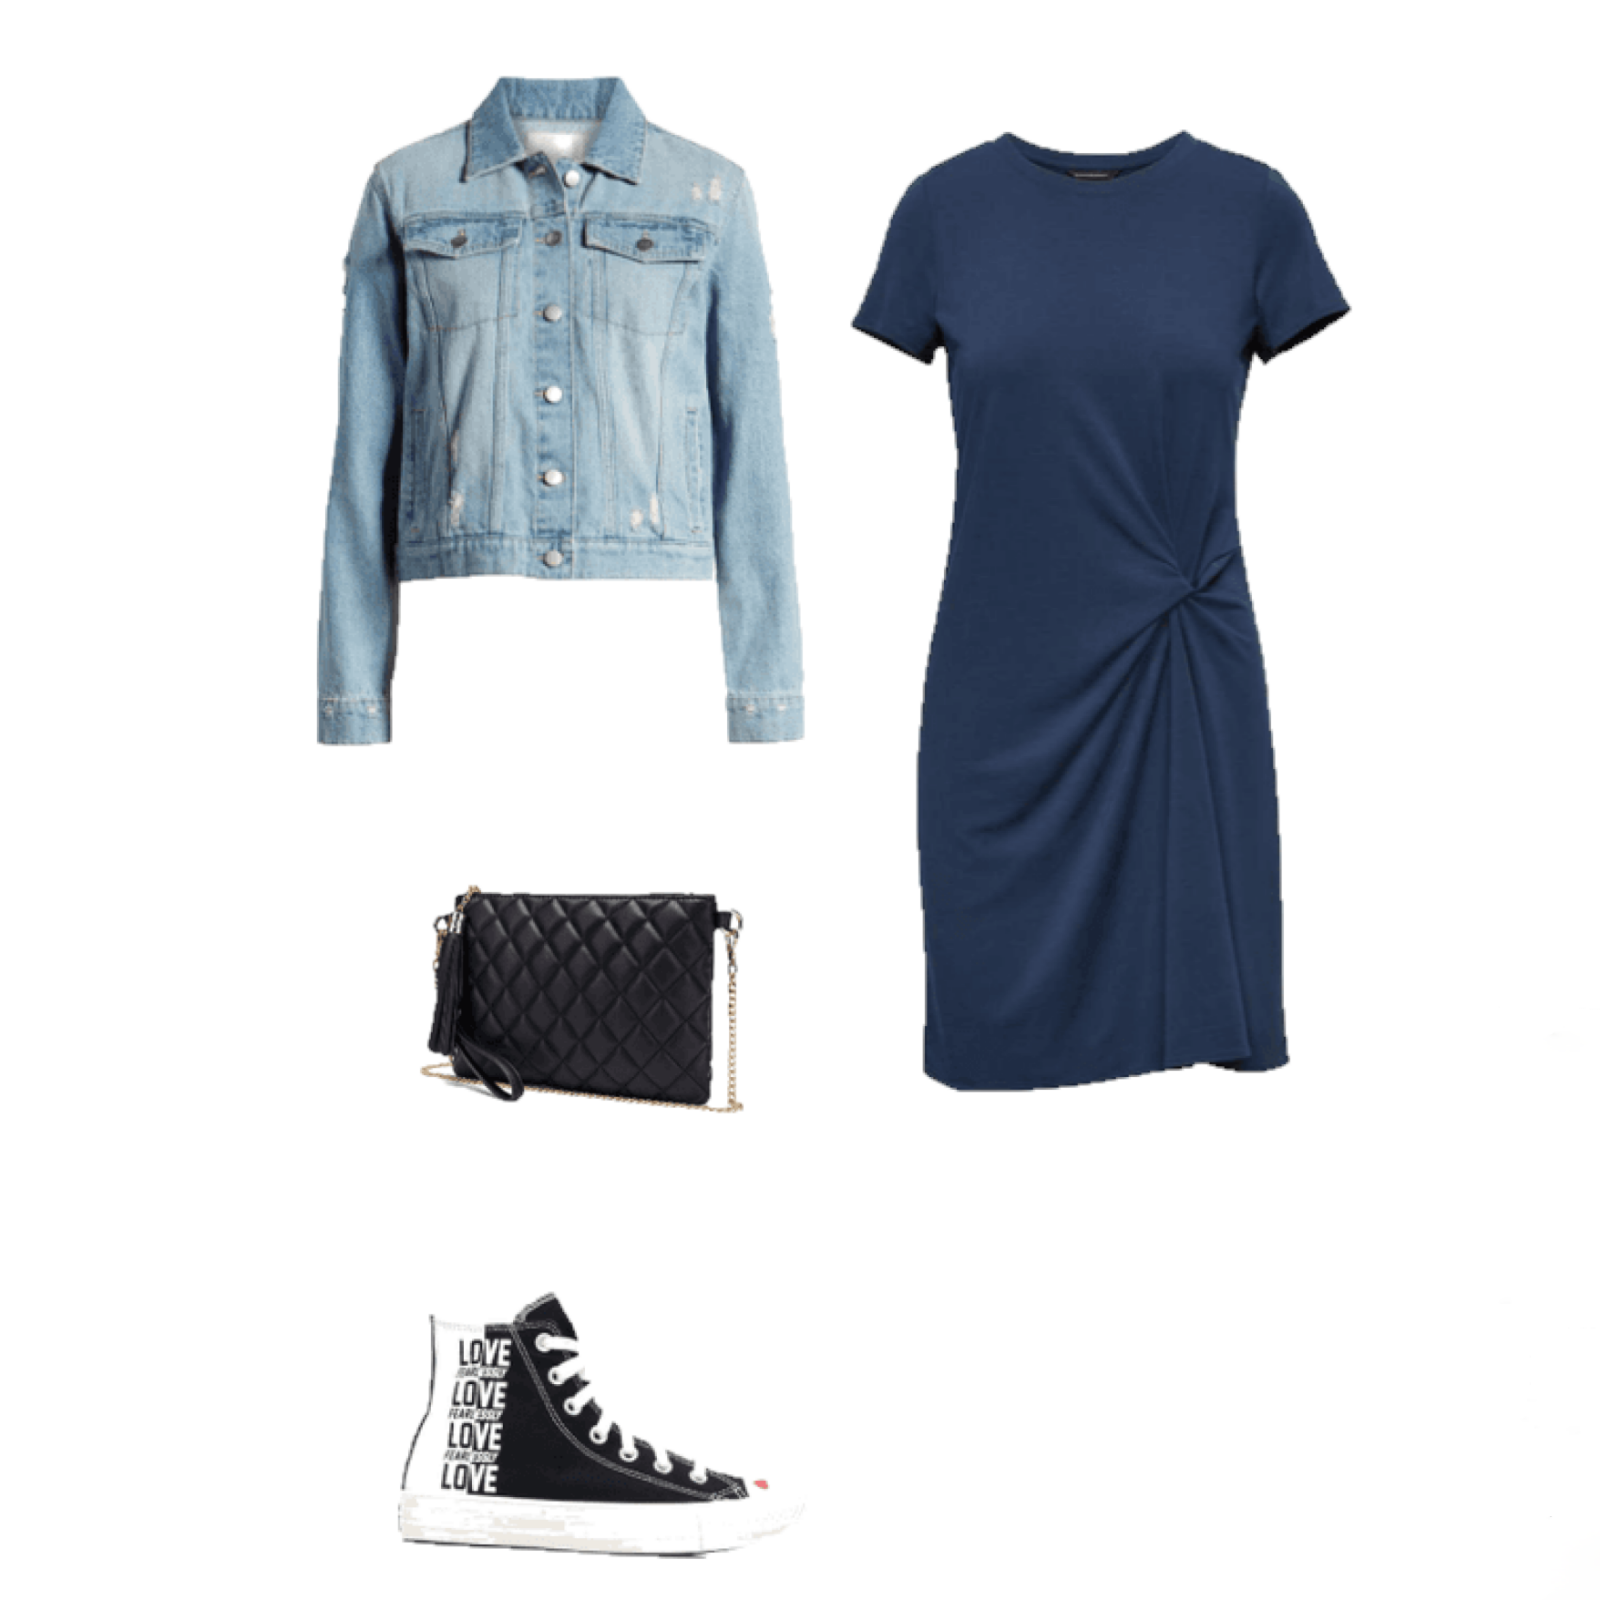 Outfit of the Day: blue and black